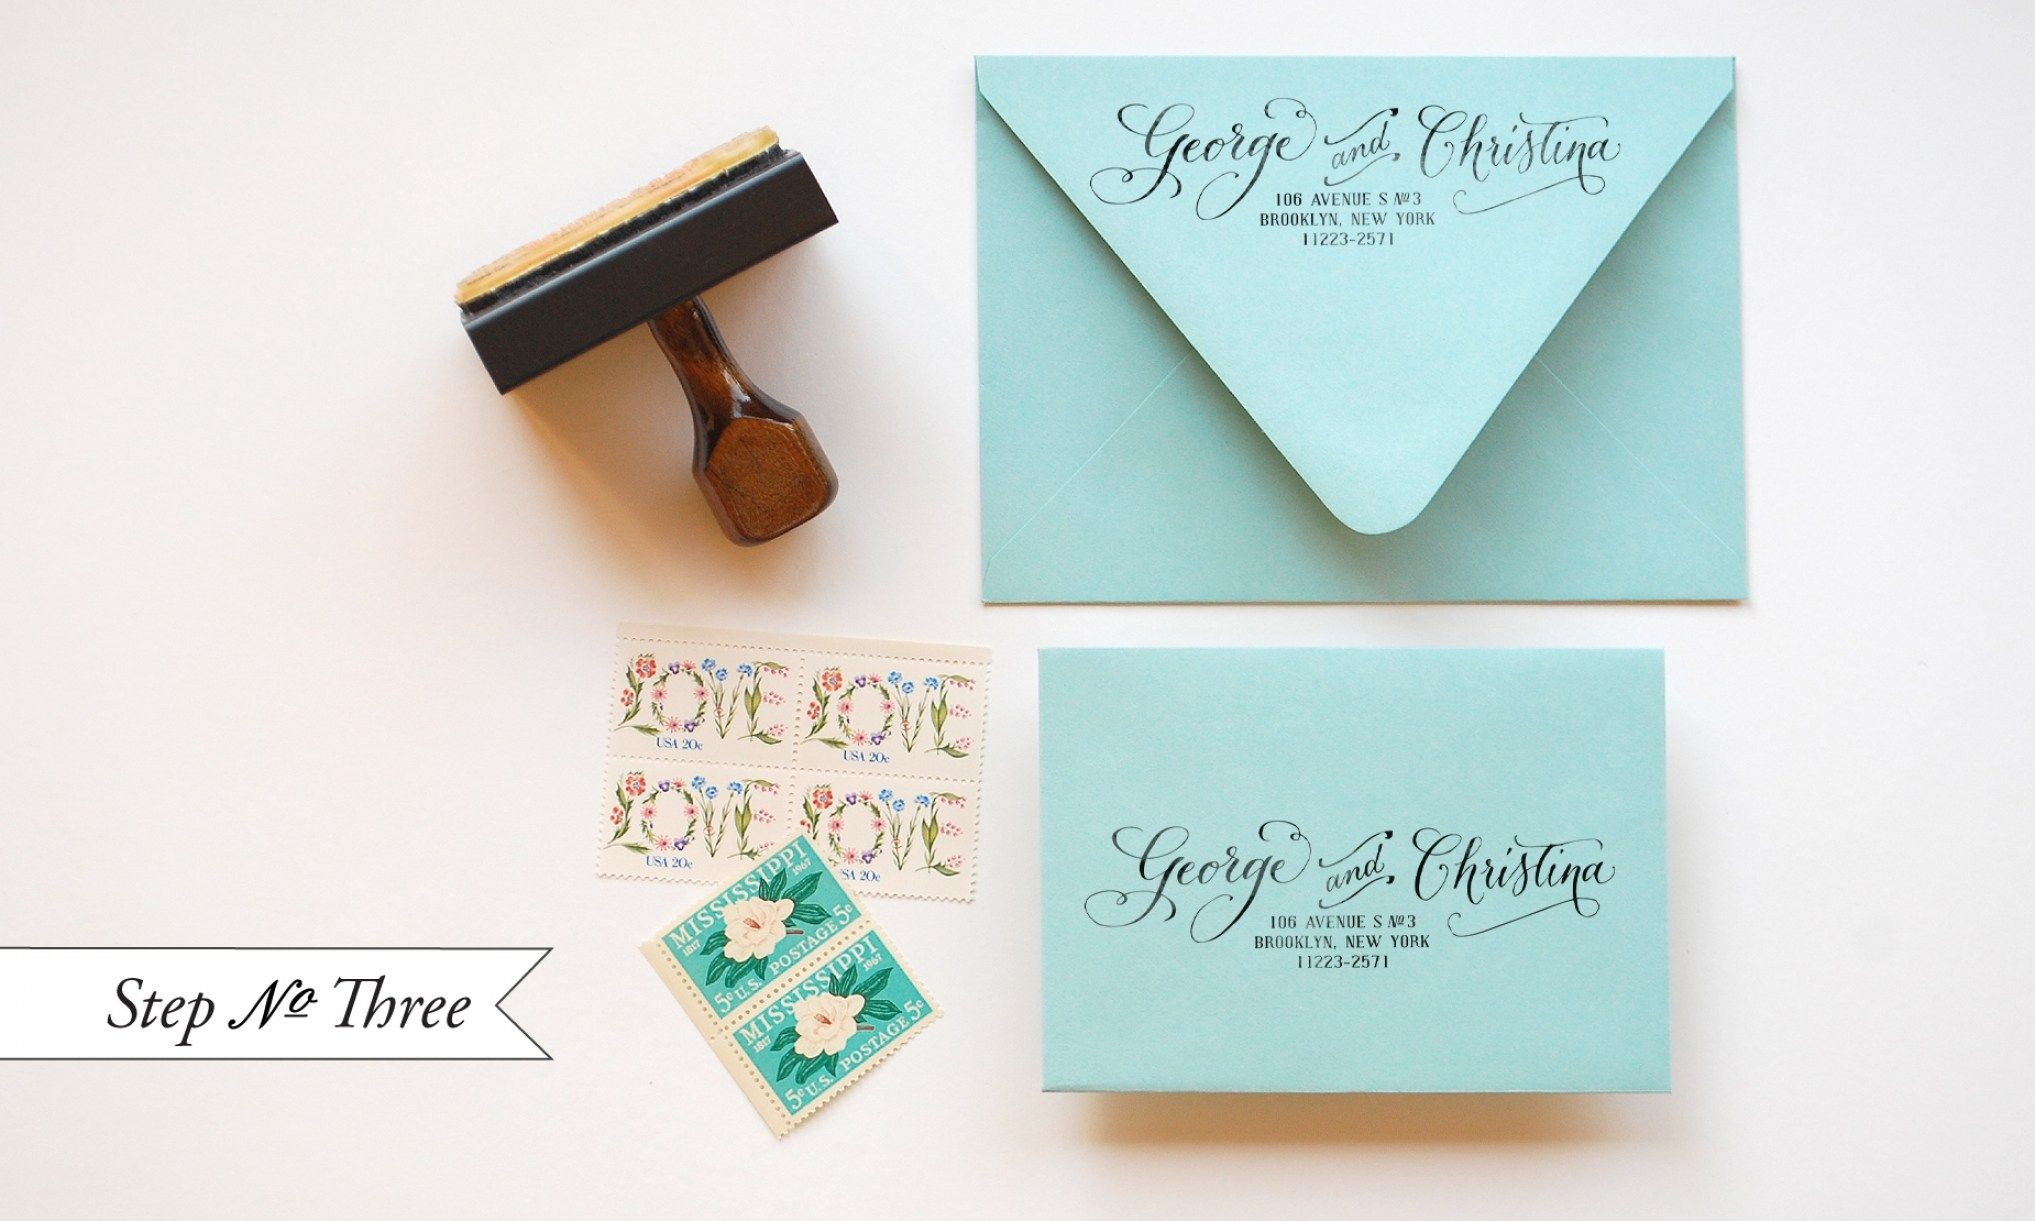 30 Address Etiquette Invitation Return Wedding Etiquette Wedding